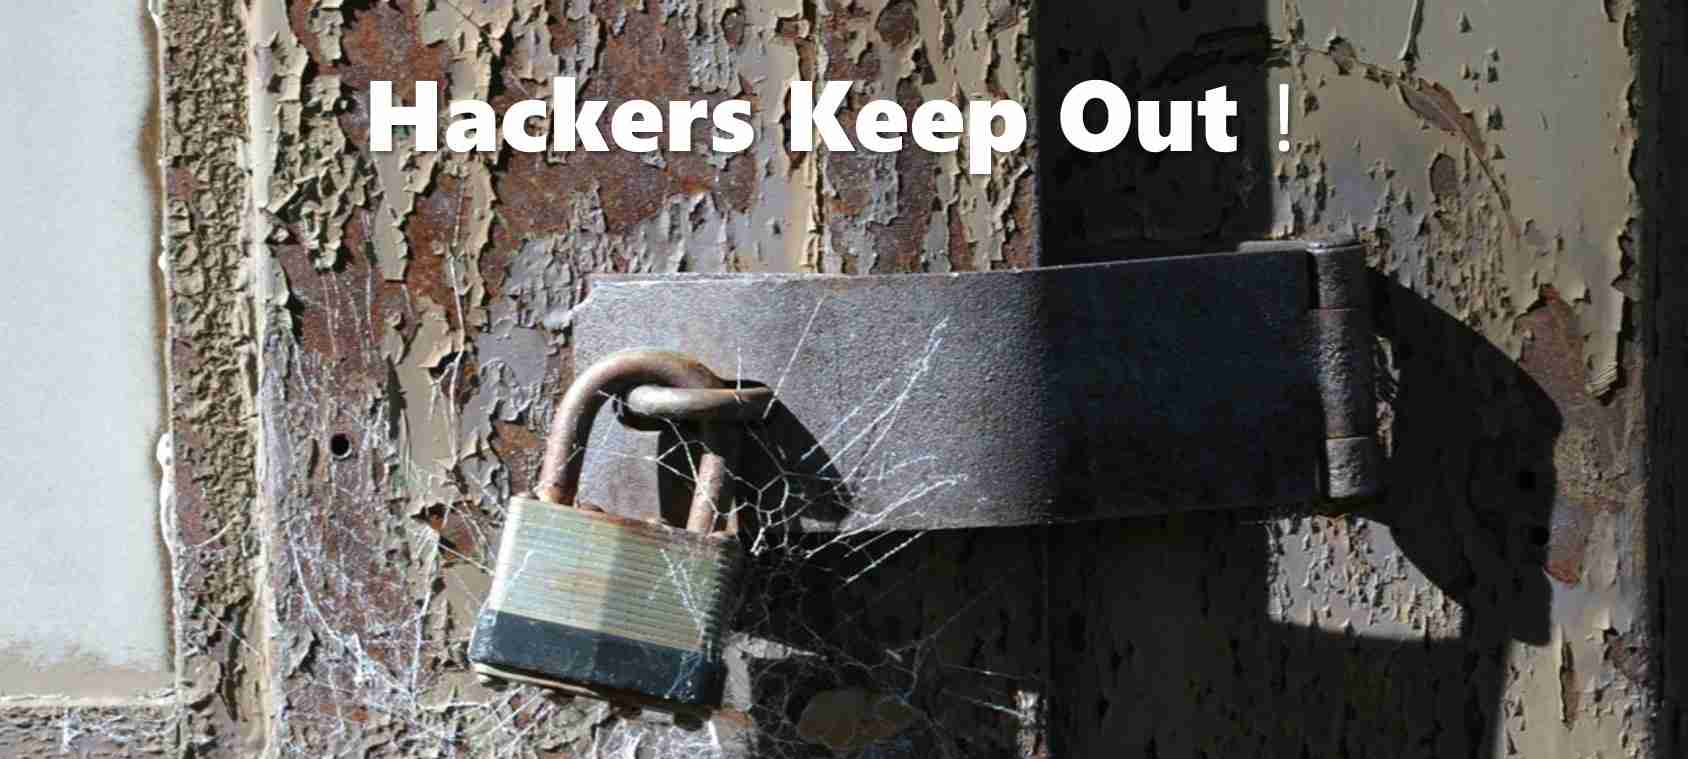 A padlocked door with hackers keep out